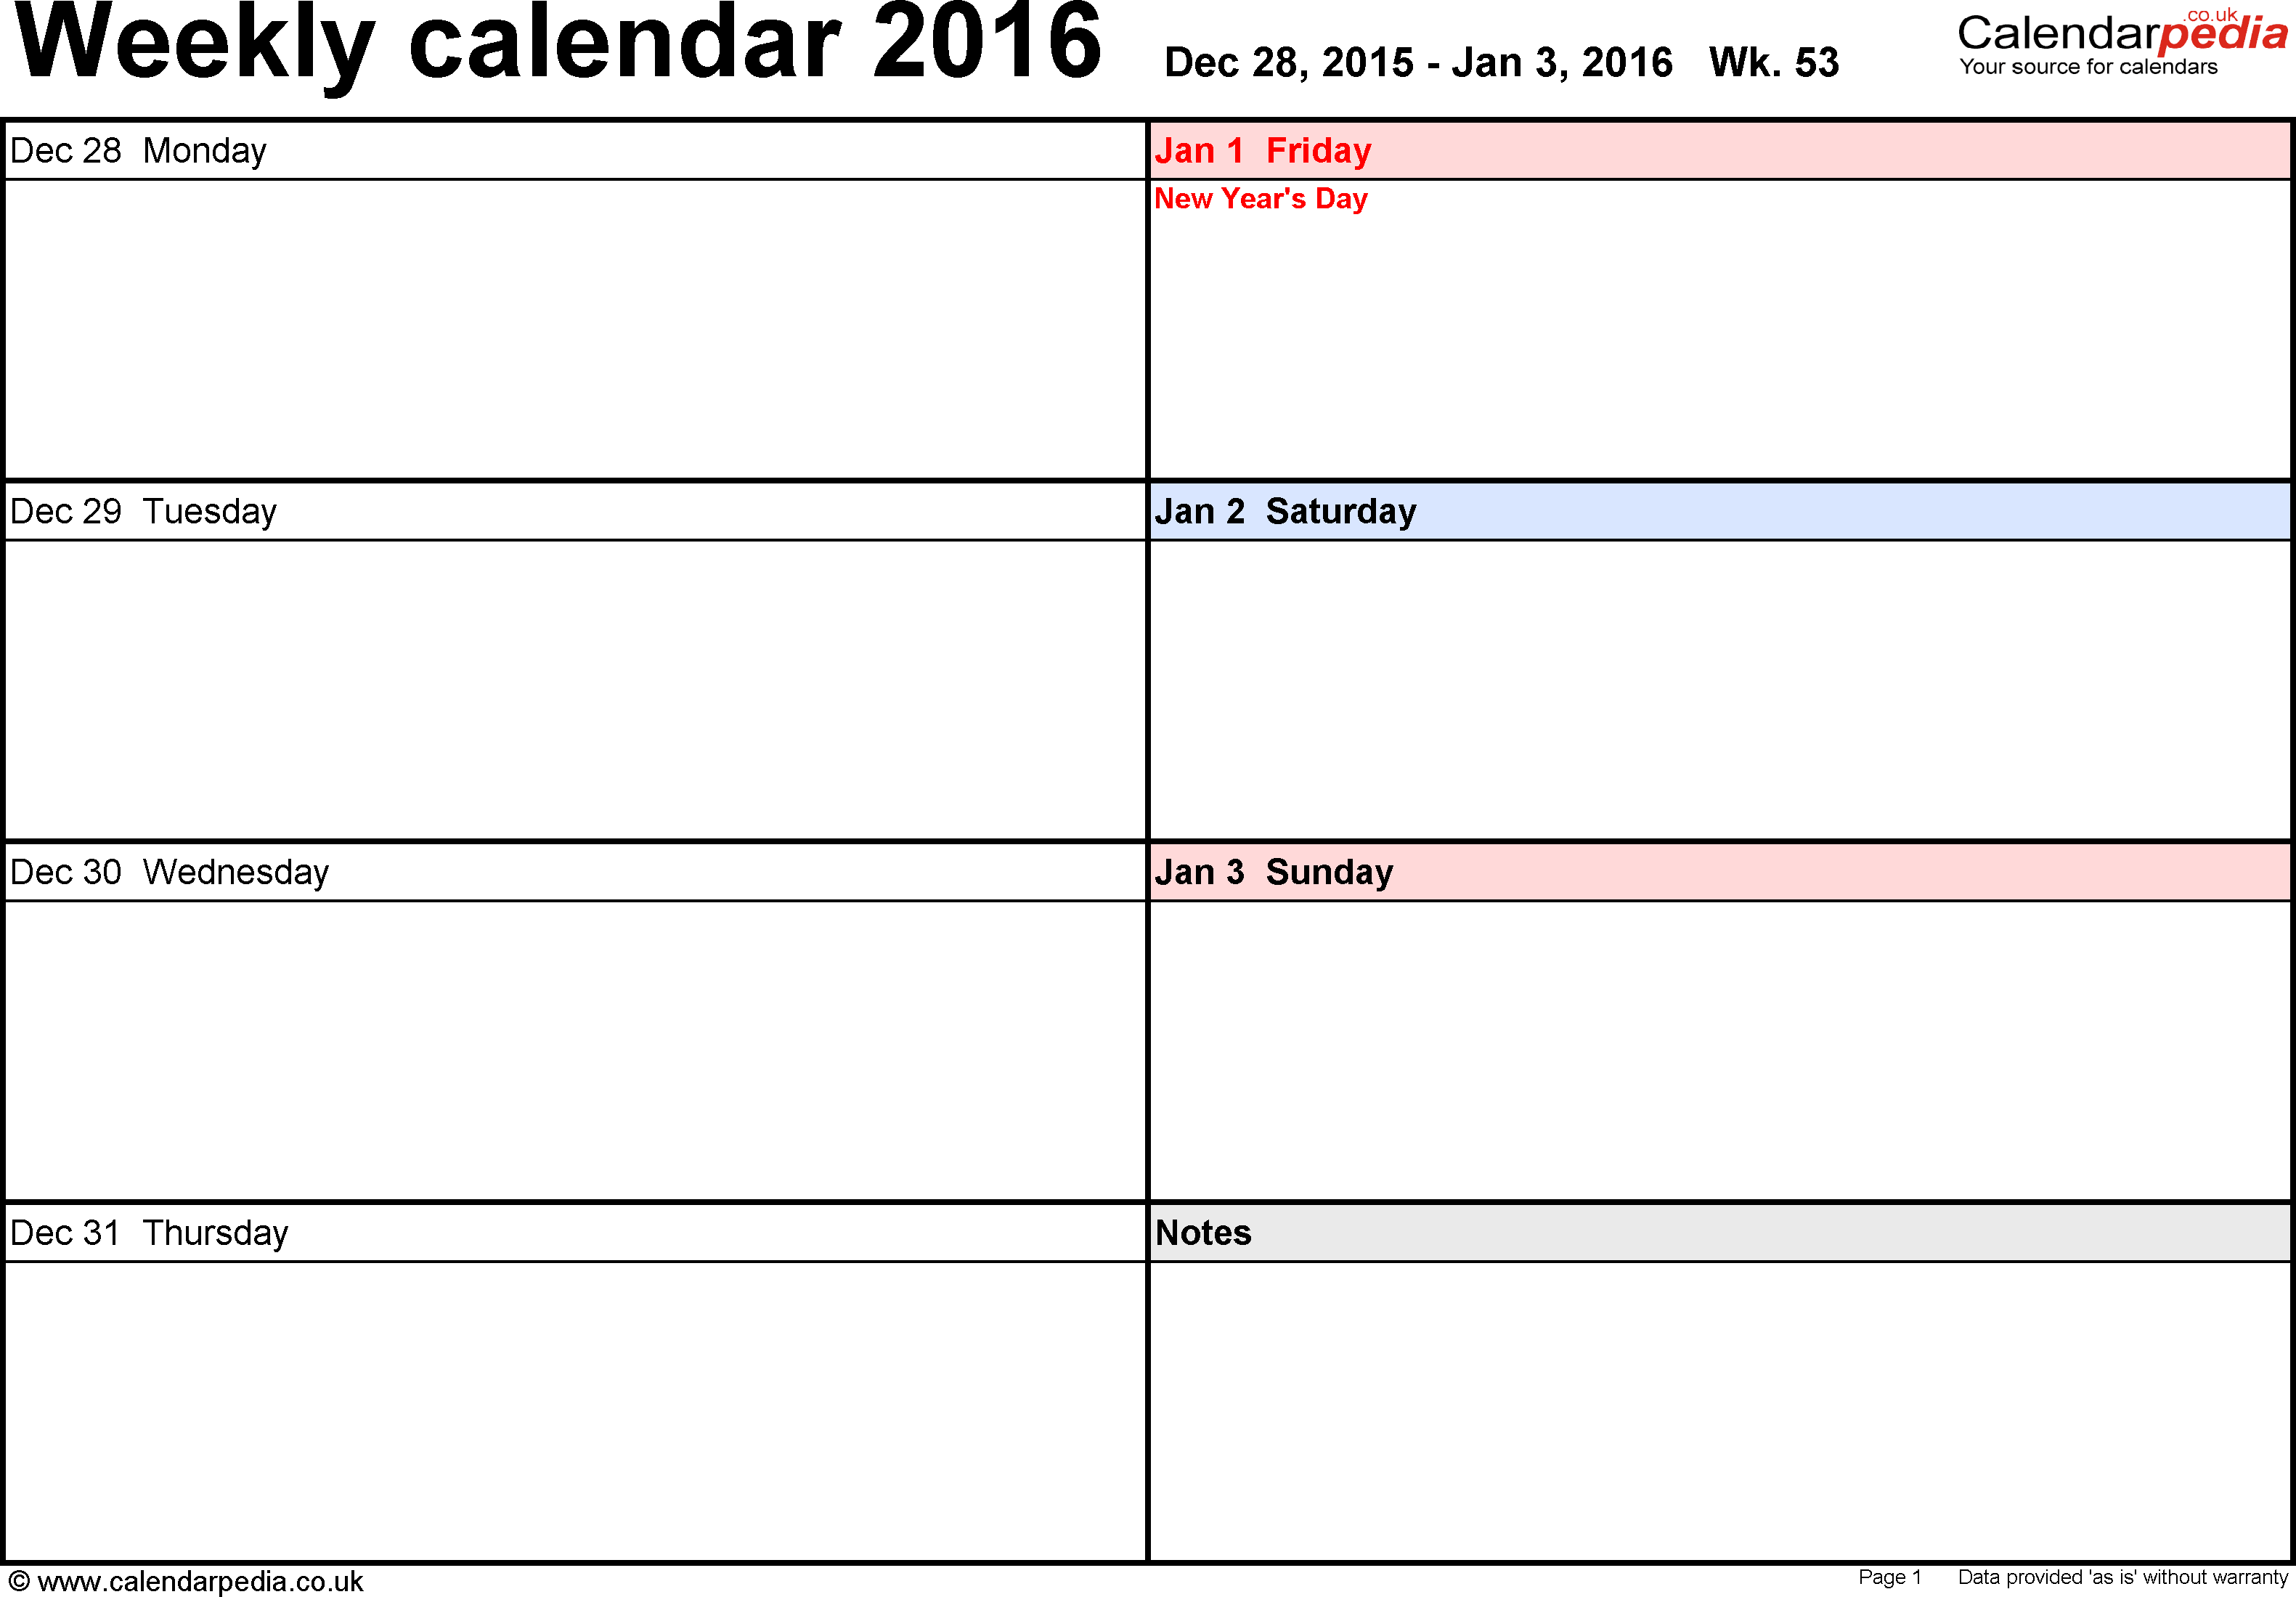 Download PDF template 6: Weekly calendar 2016, landscape orientation, days horizontally, 53 pages (1 calendar week on 1 page)